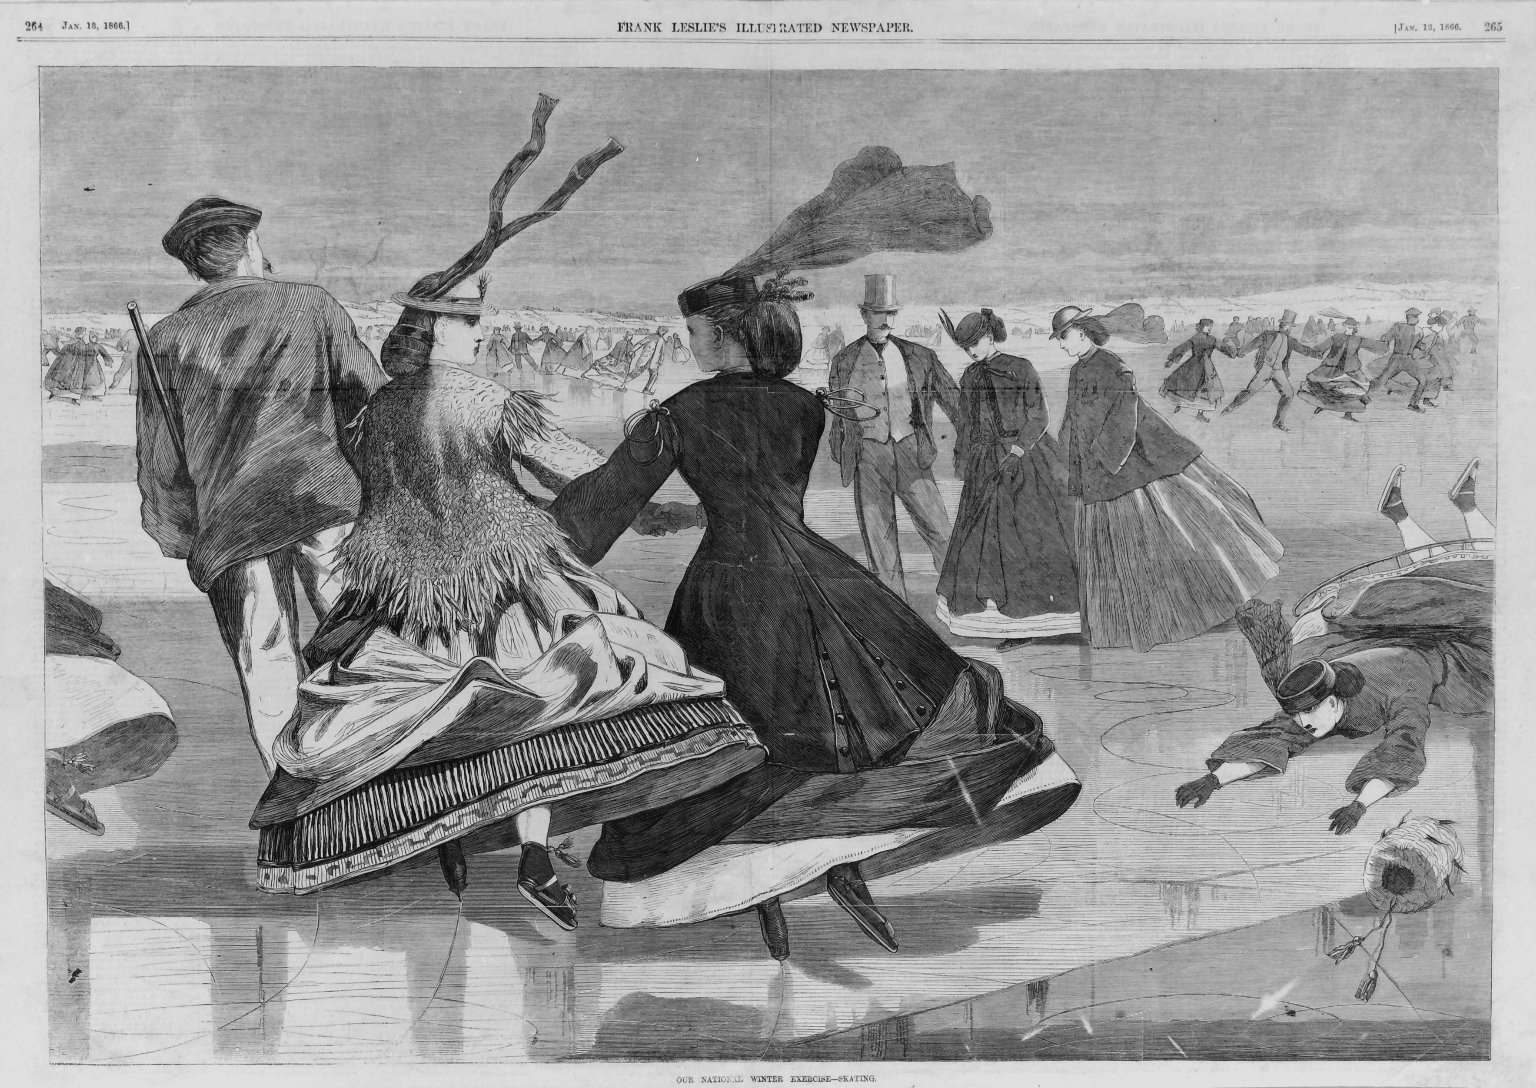 Brooklyn Museum: Our National Winter Exercise--Skating